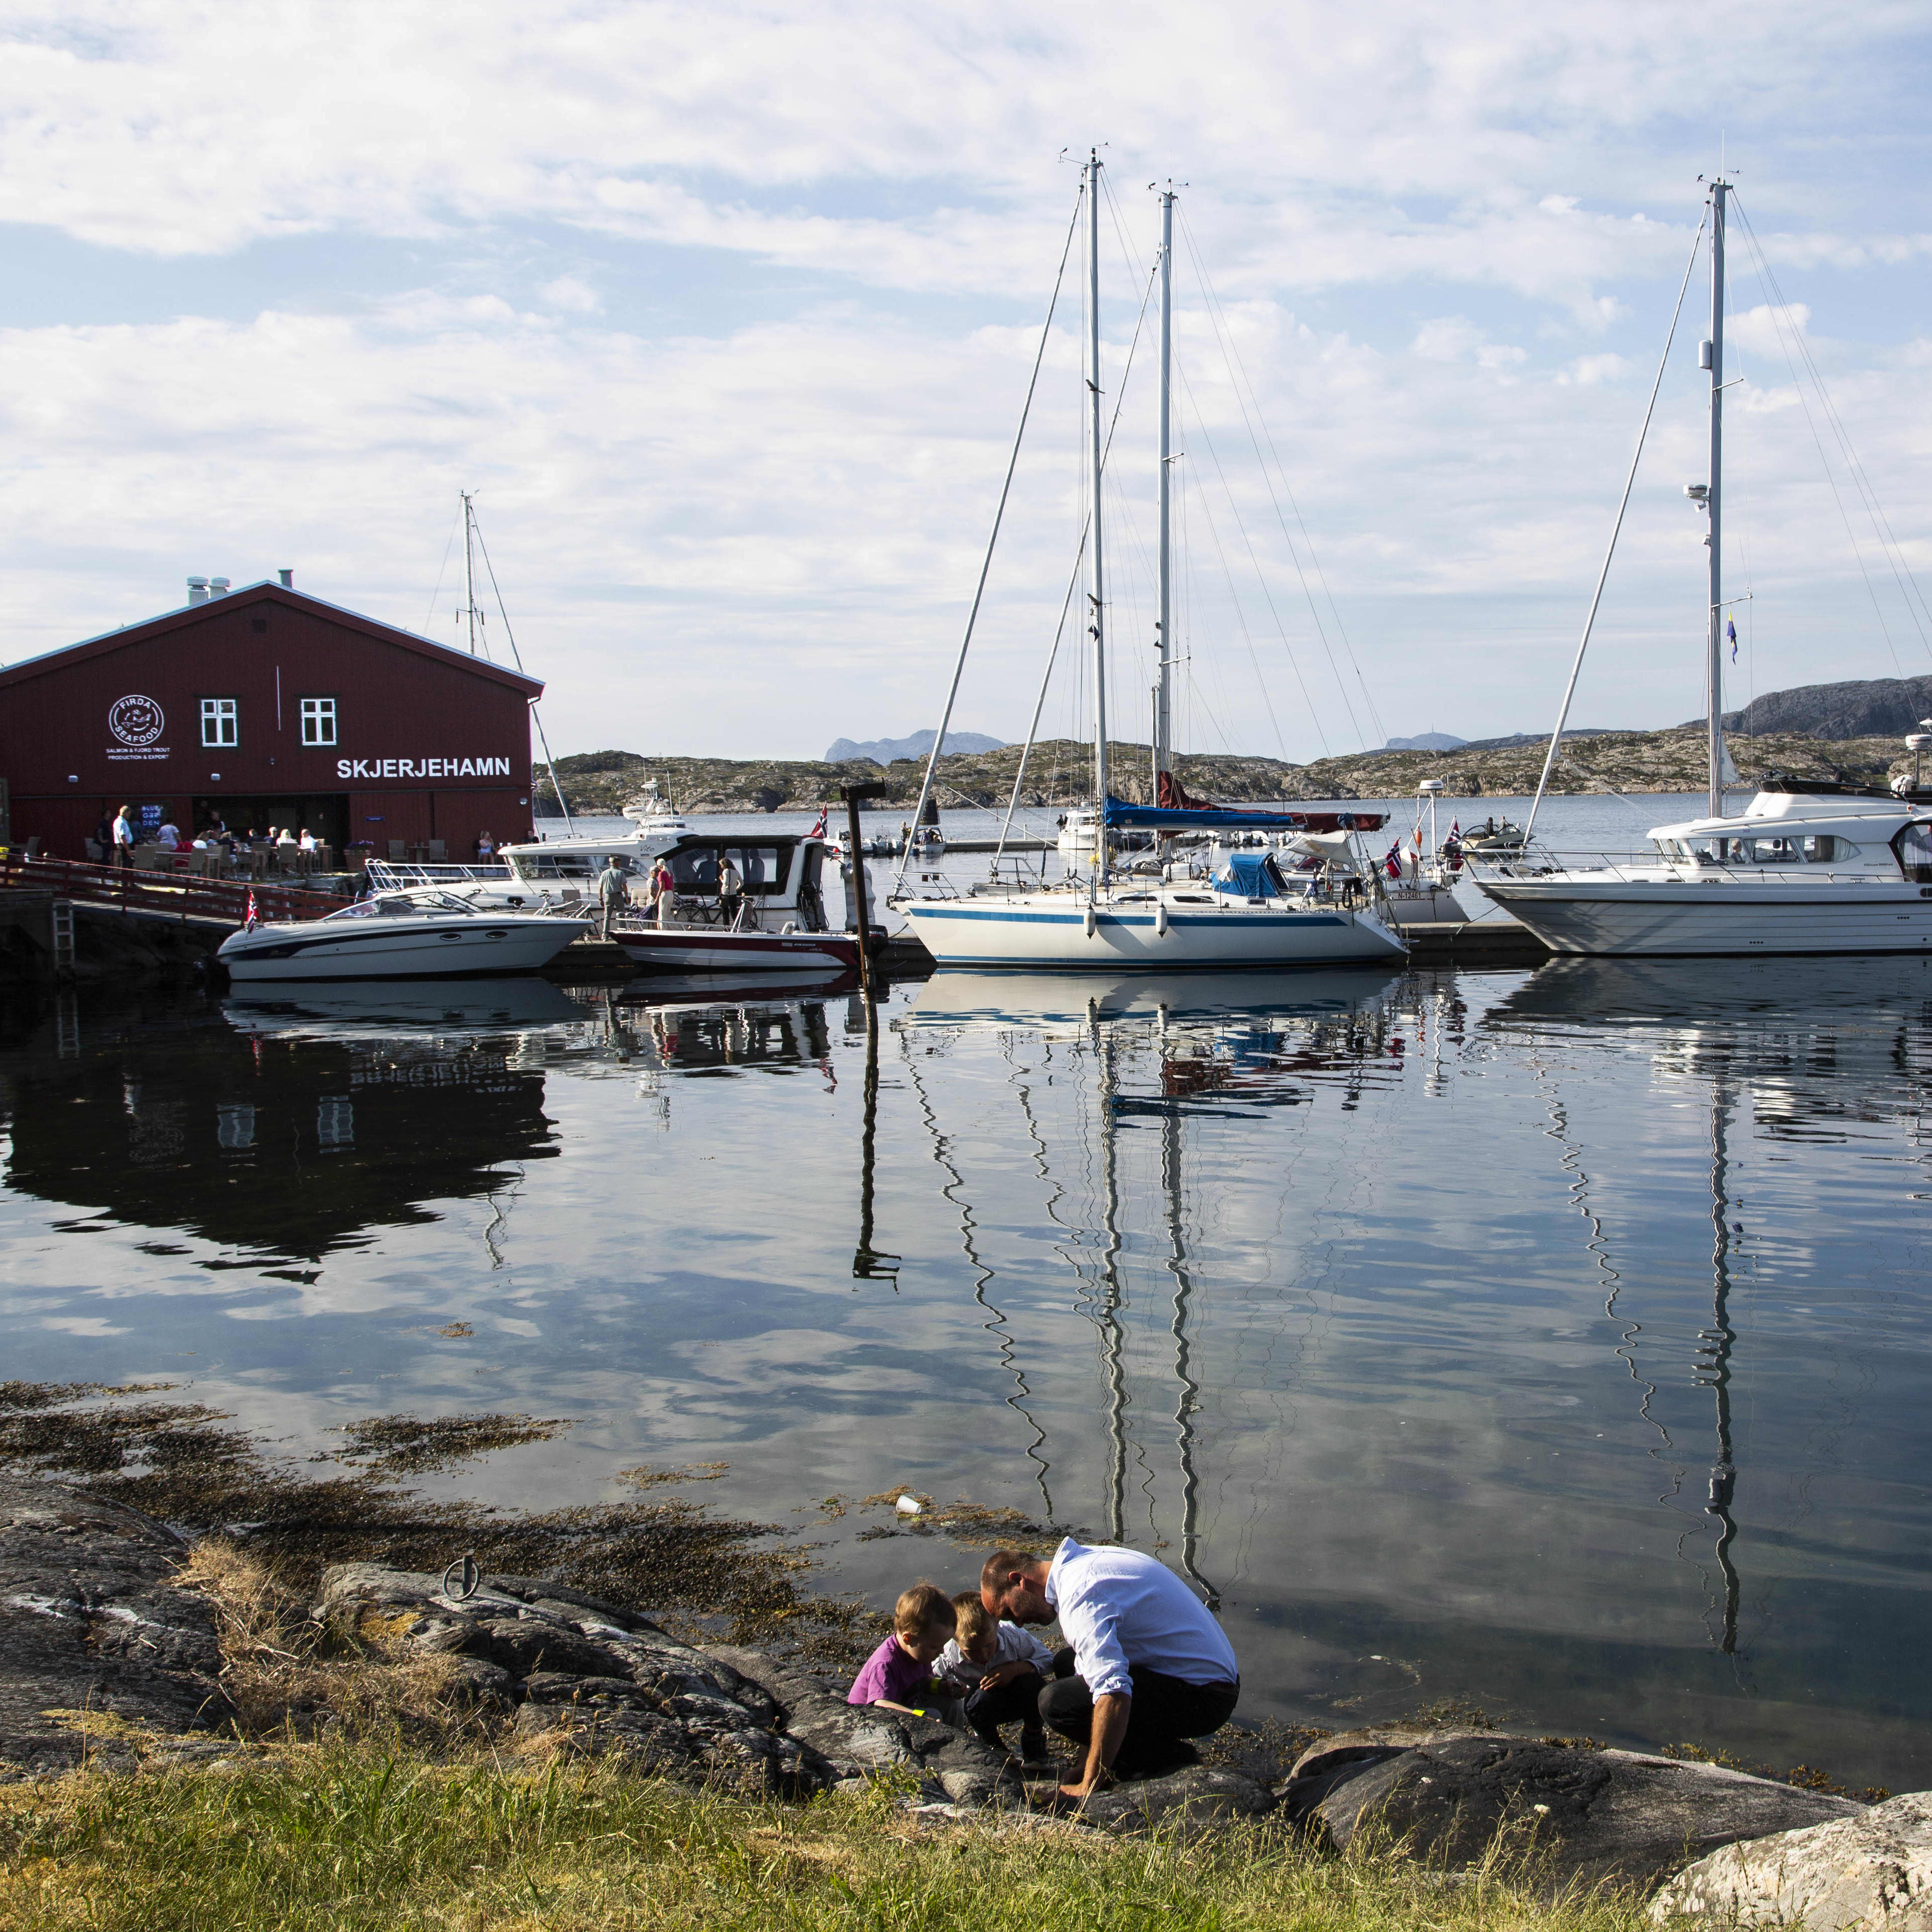 A man playing with two children by the water. In the background you see houses and boat mirrored in the water.